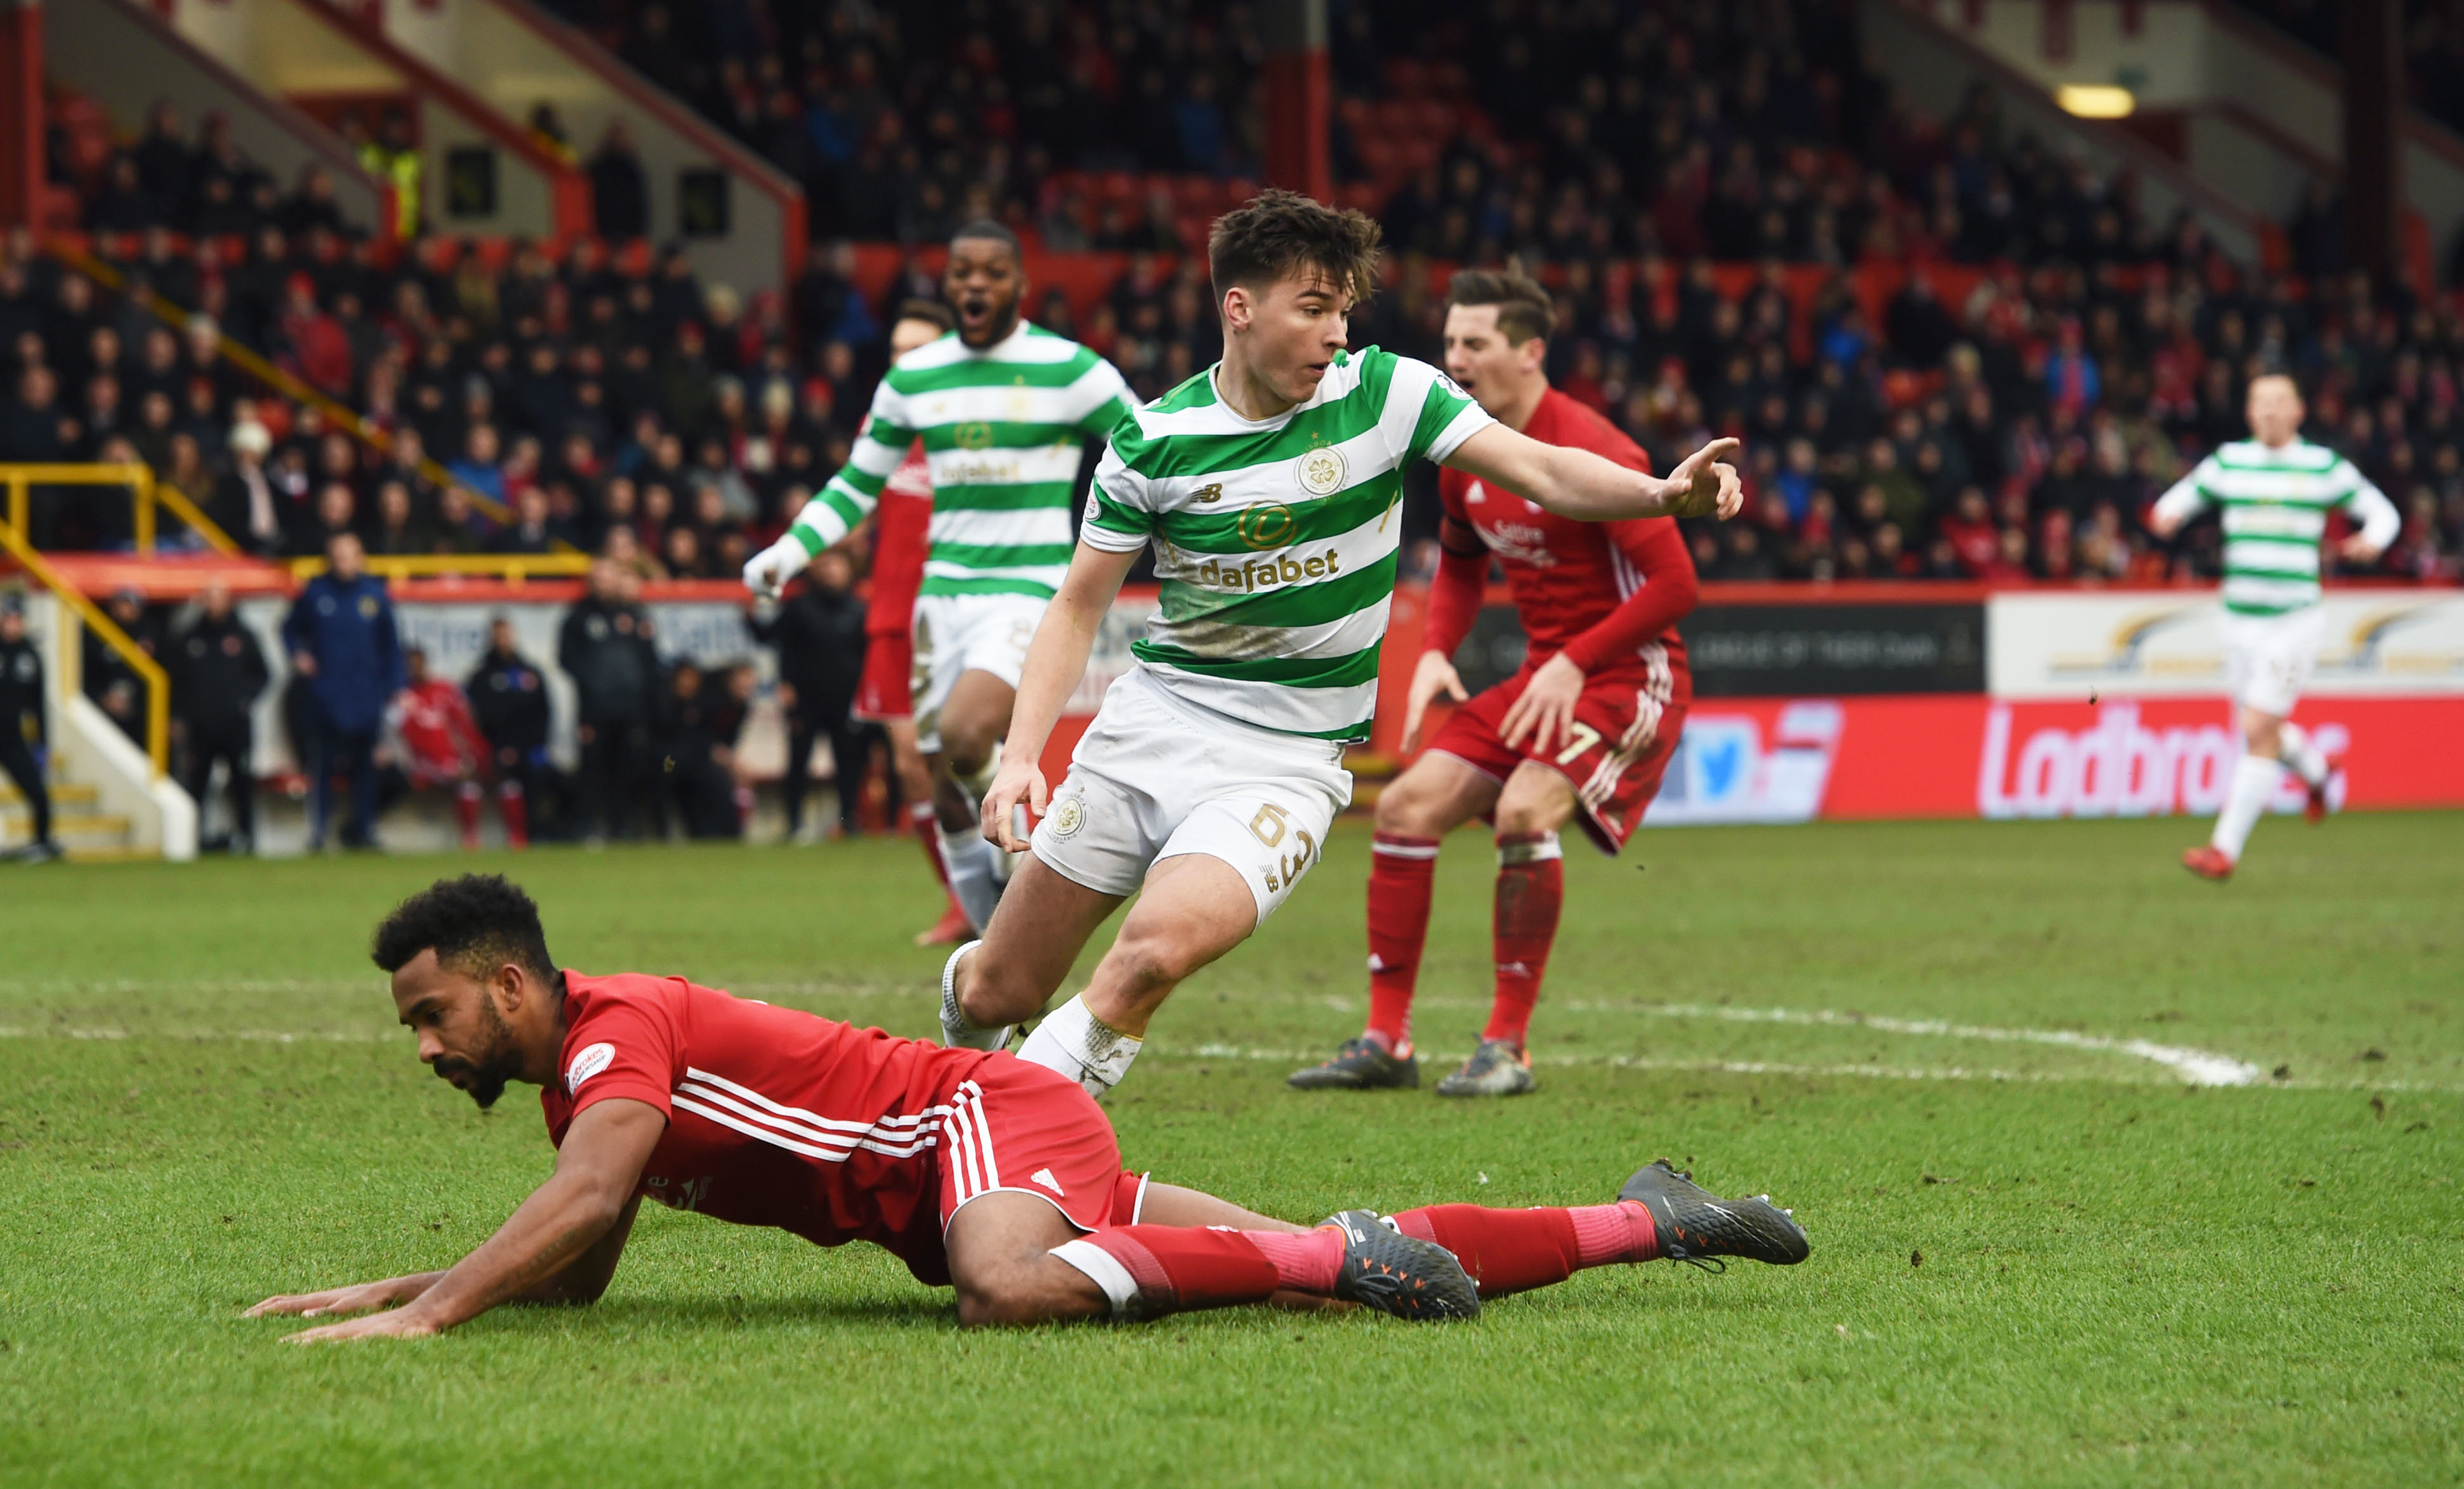 Celtic's Kieran Tierney in action with Aberdeen's Shay Logan.